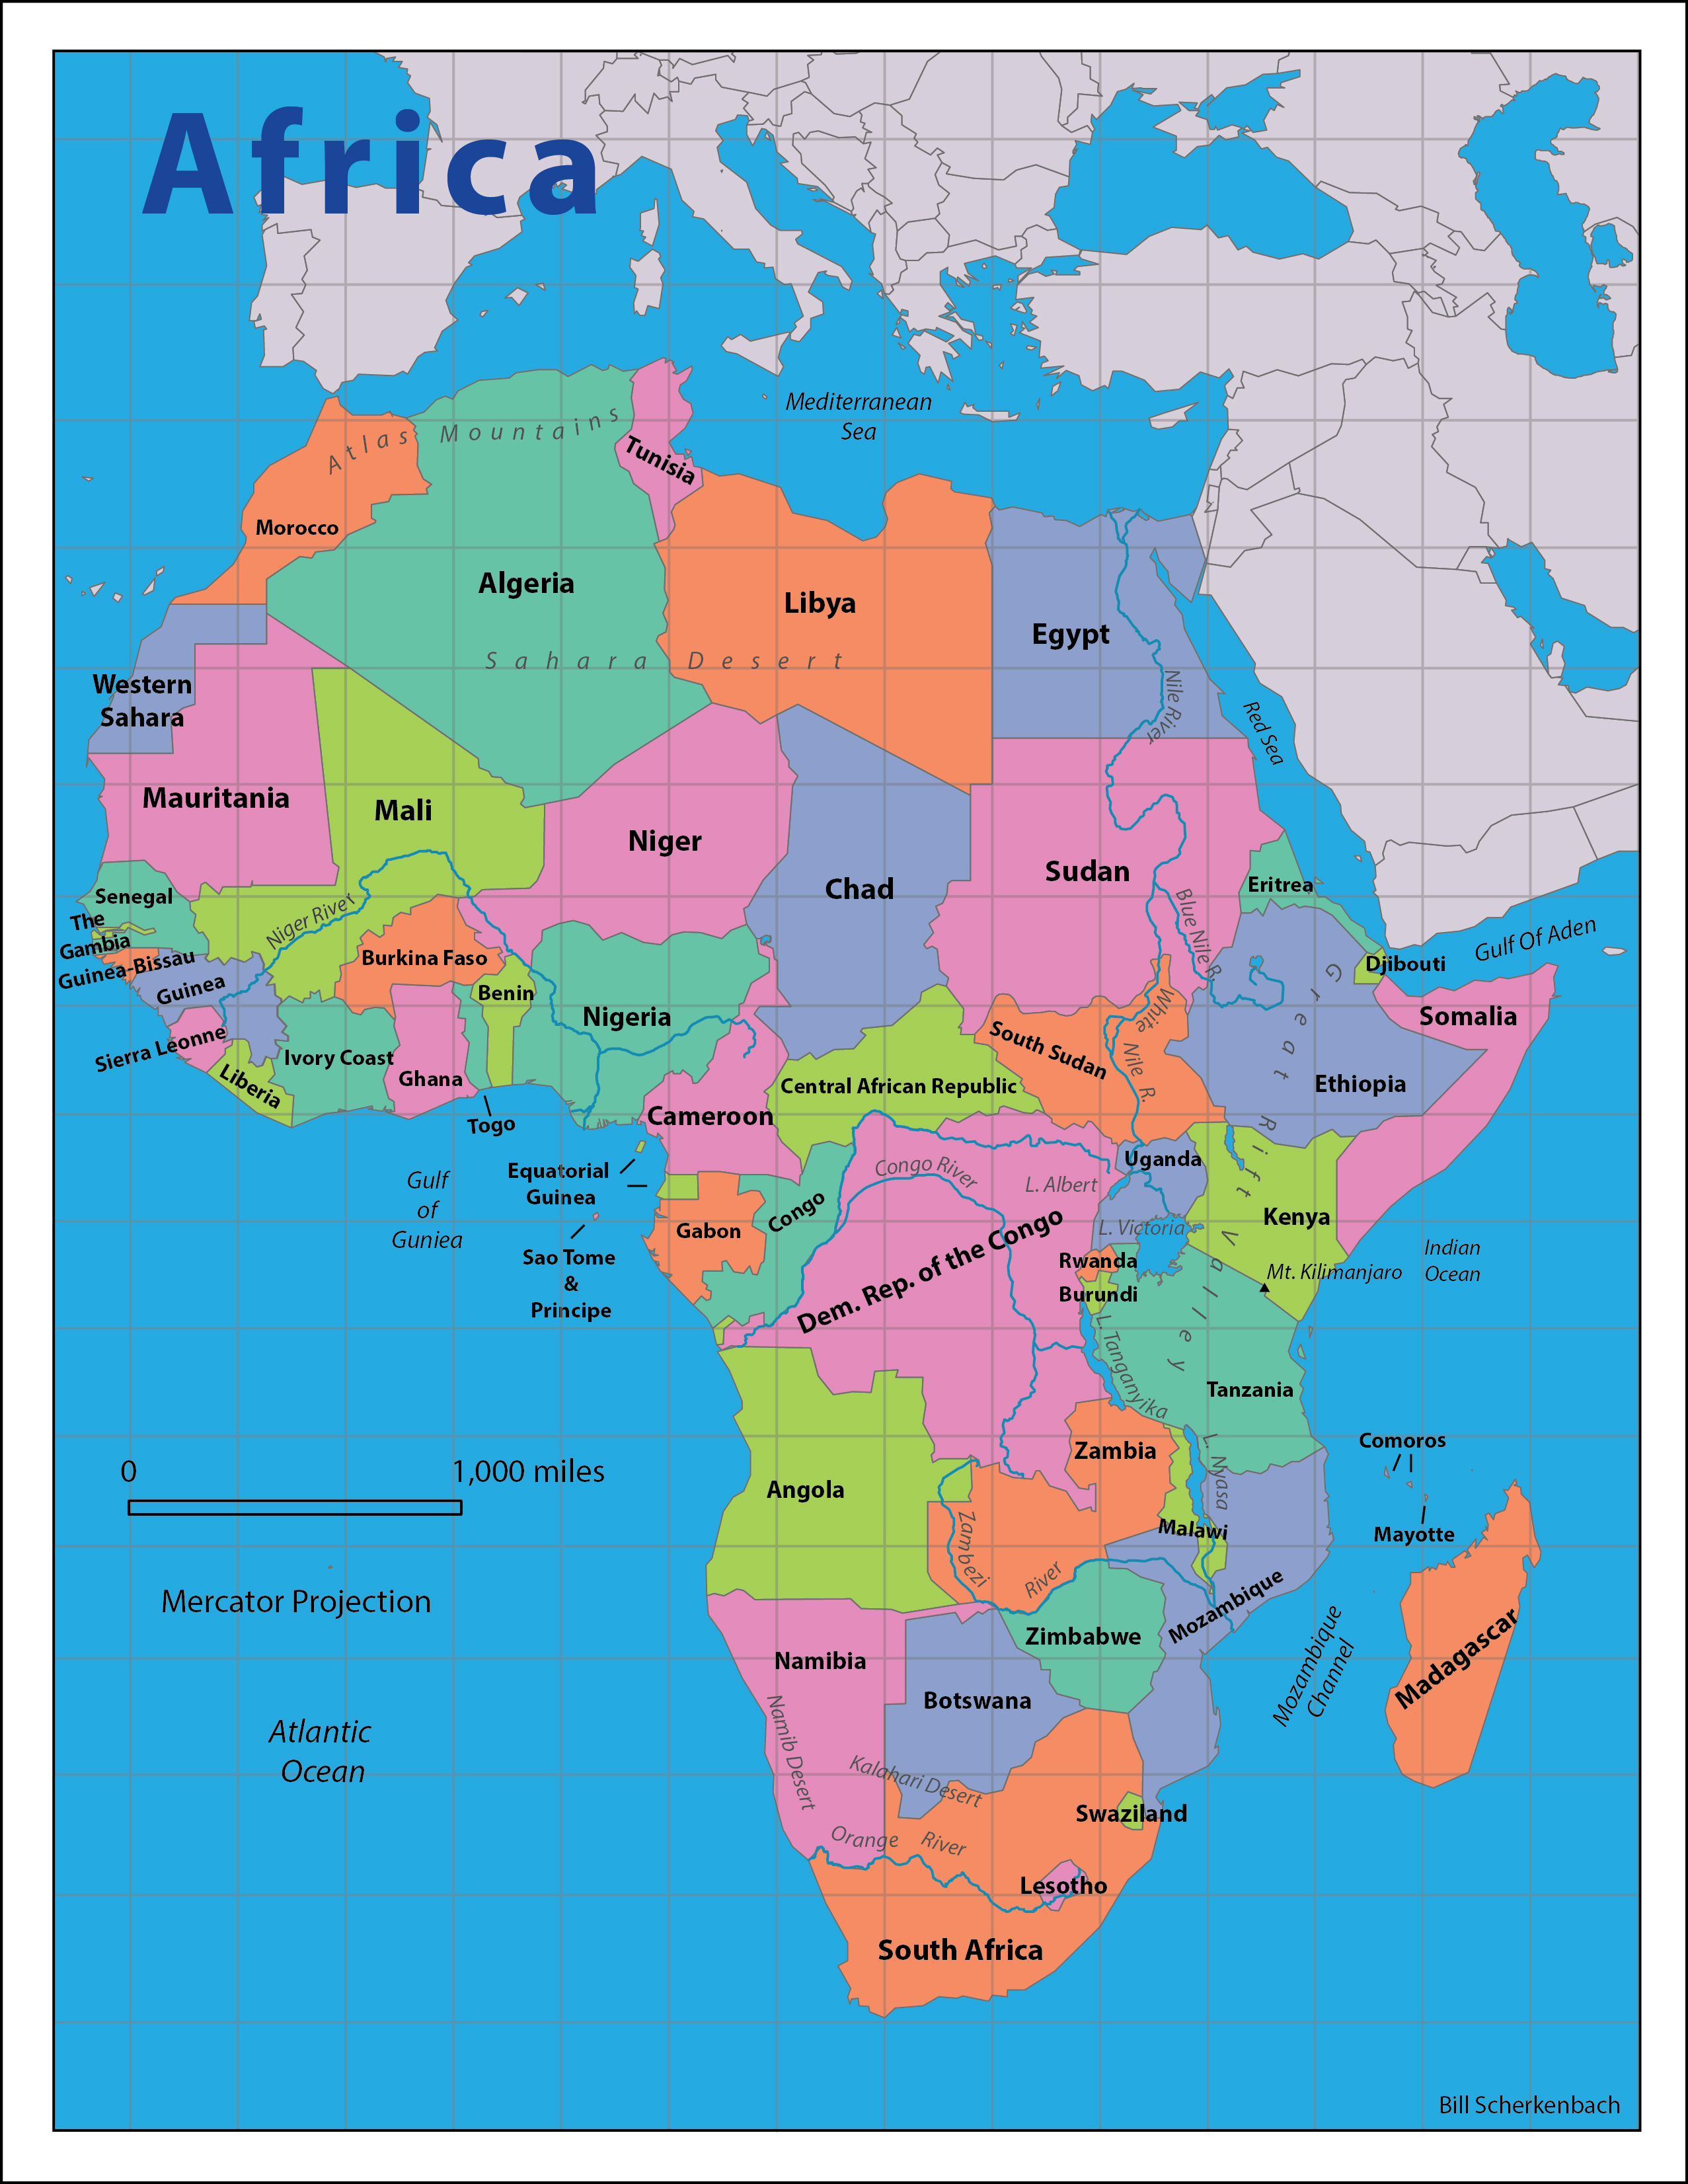 Africa Reference Map